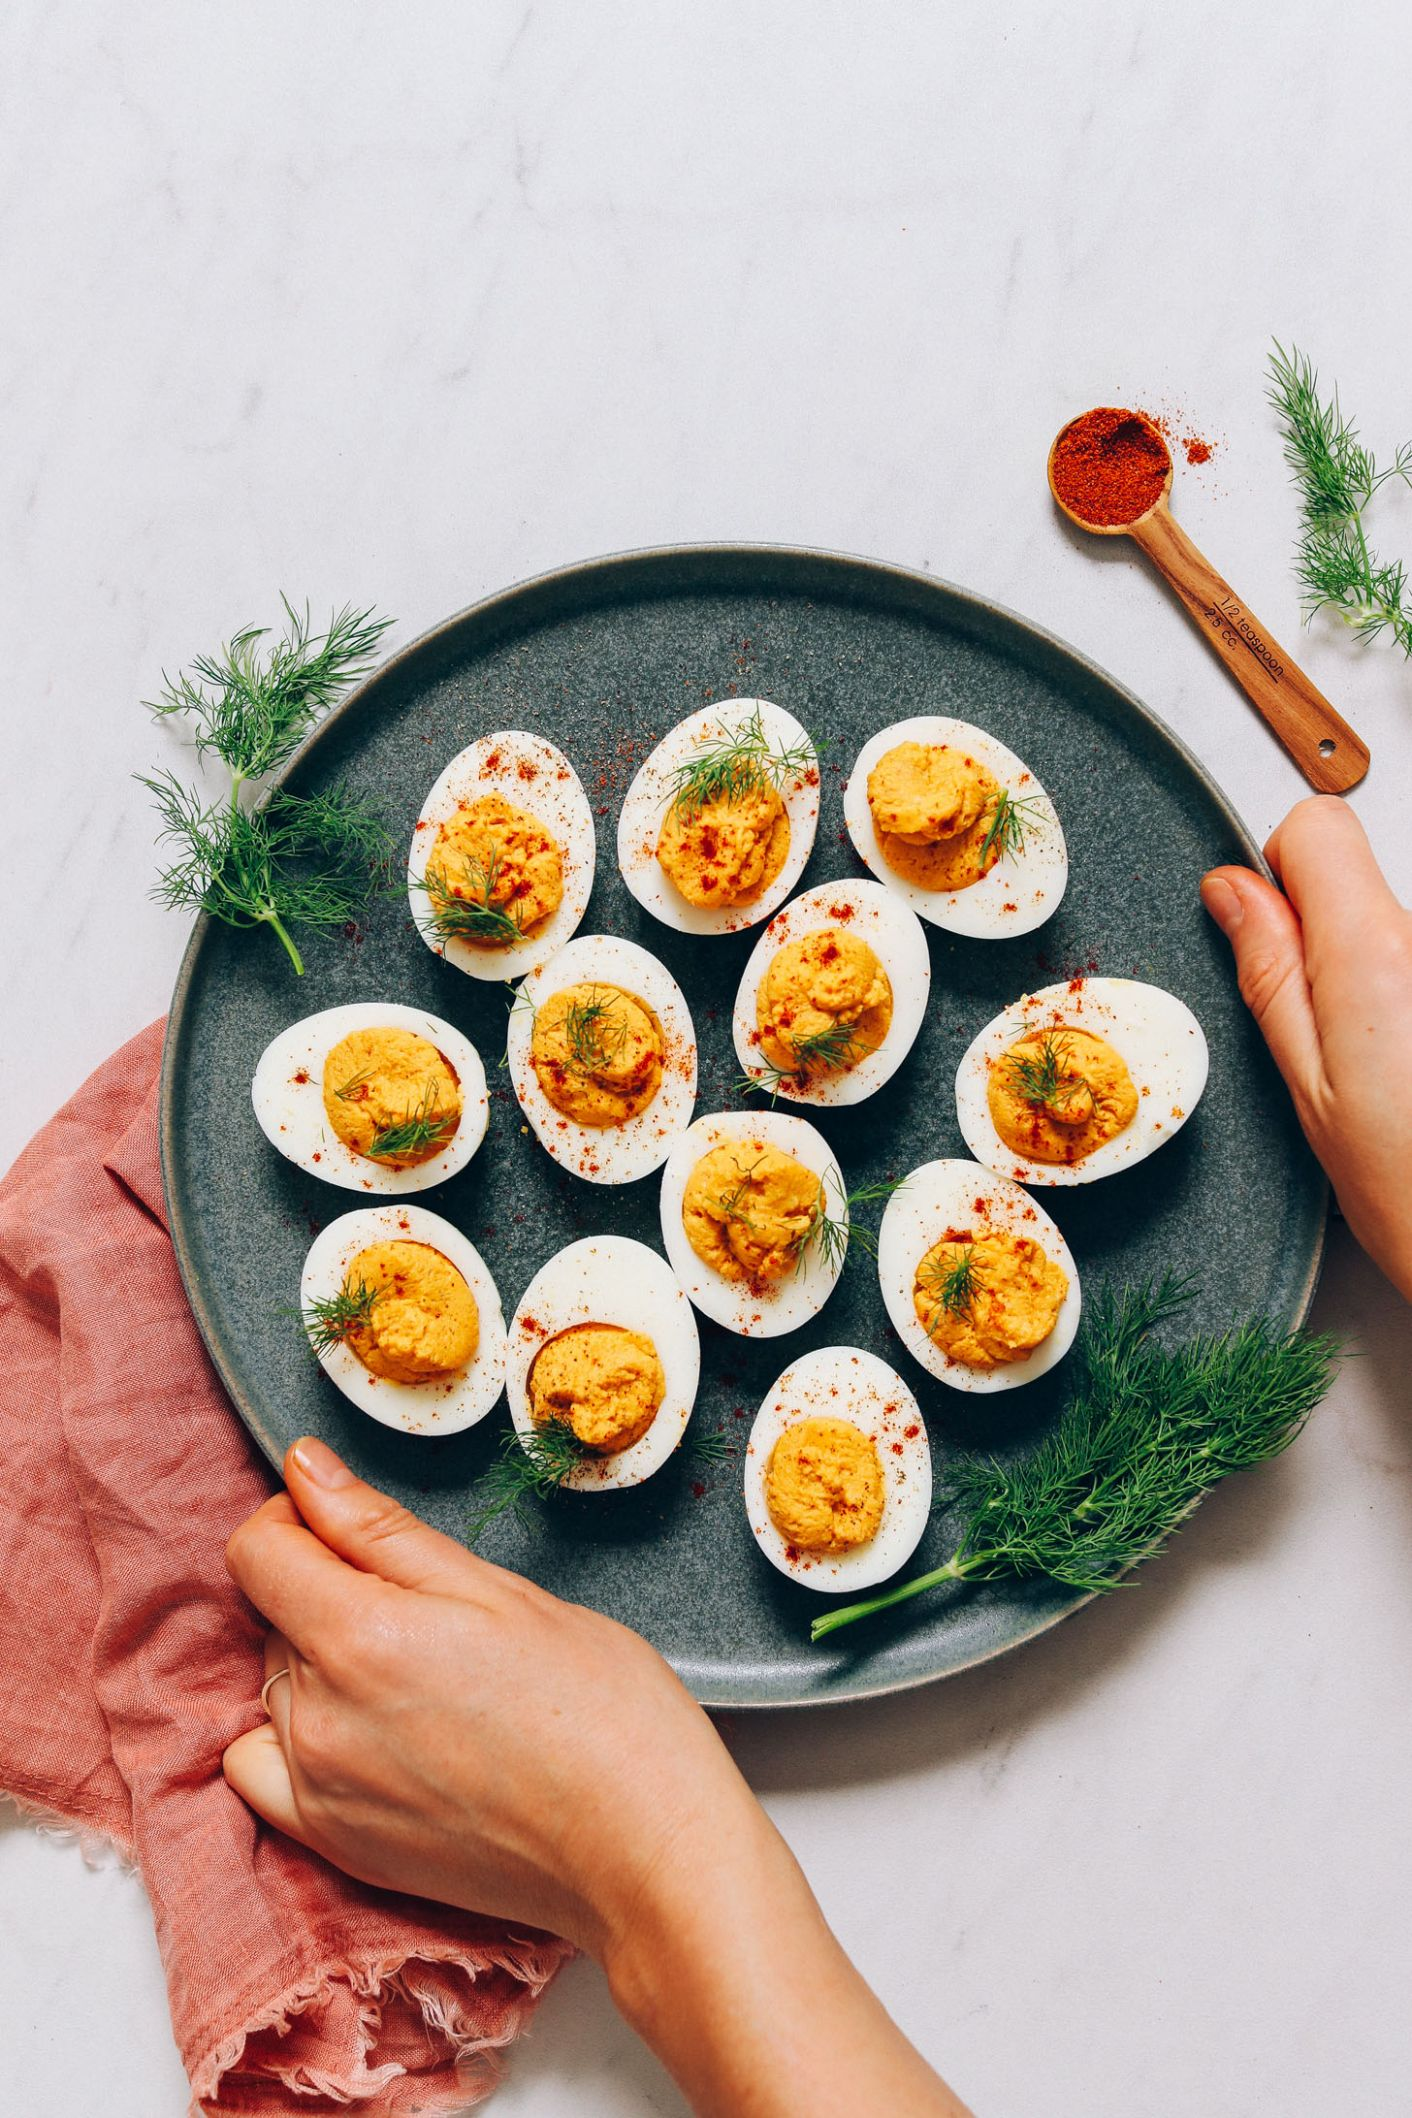 Mayo-Free Deviled Eggs - Recipes Egg Free